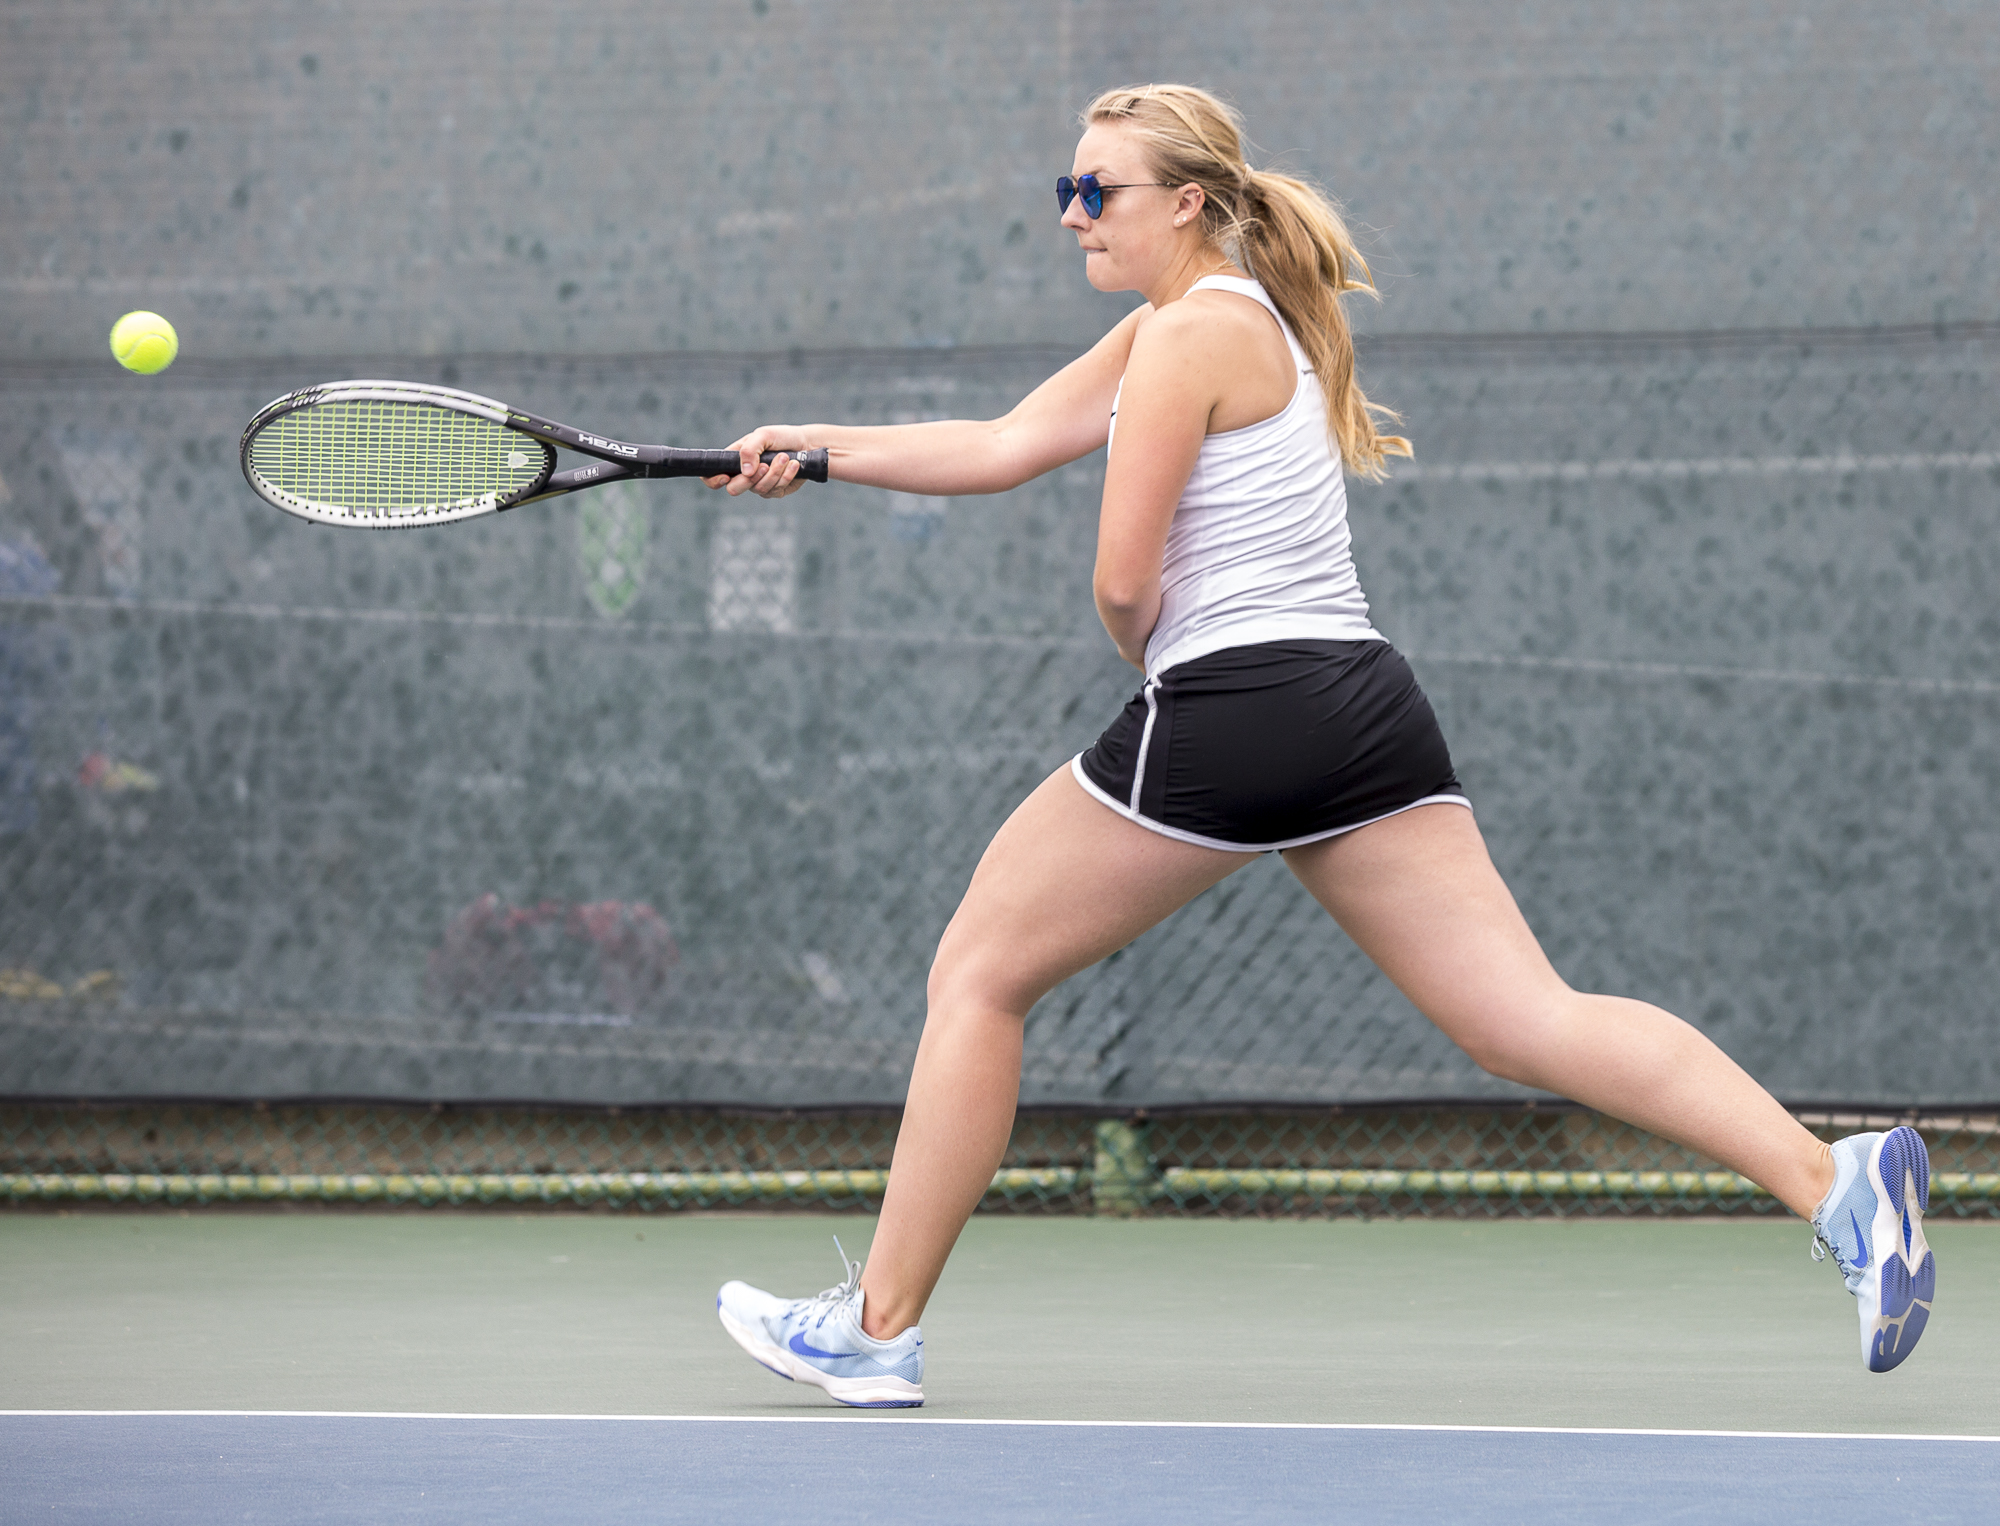 Santa Monica College Corsair Amanda Golling (#3, singles) prepares for a powerful, forehand swing against her Glendale City College Vaquero opponent at the Ocean View Park Tennis Courts in Santa Monica, California on Tuesday, March 20 2018. Golling would go on to lose both sets of her game, 0-2, adding to the Corsairs 0-7 loss against the Glendale College Vaqueros. (Matthew Martin/Corsair Photo)